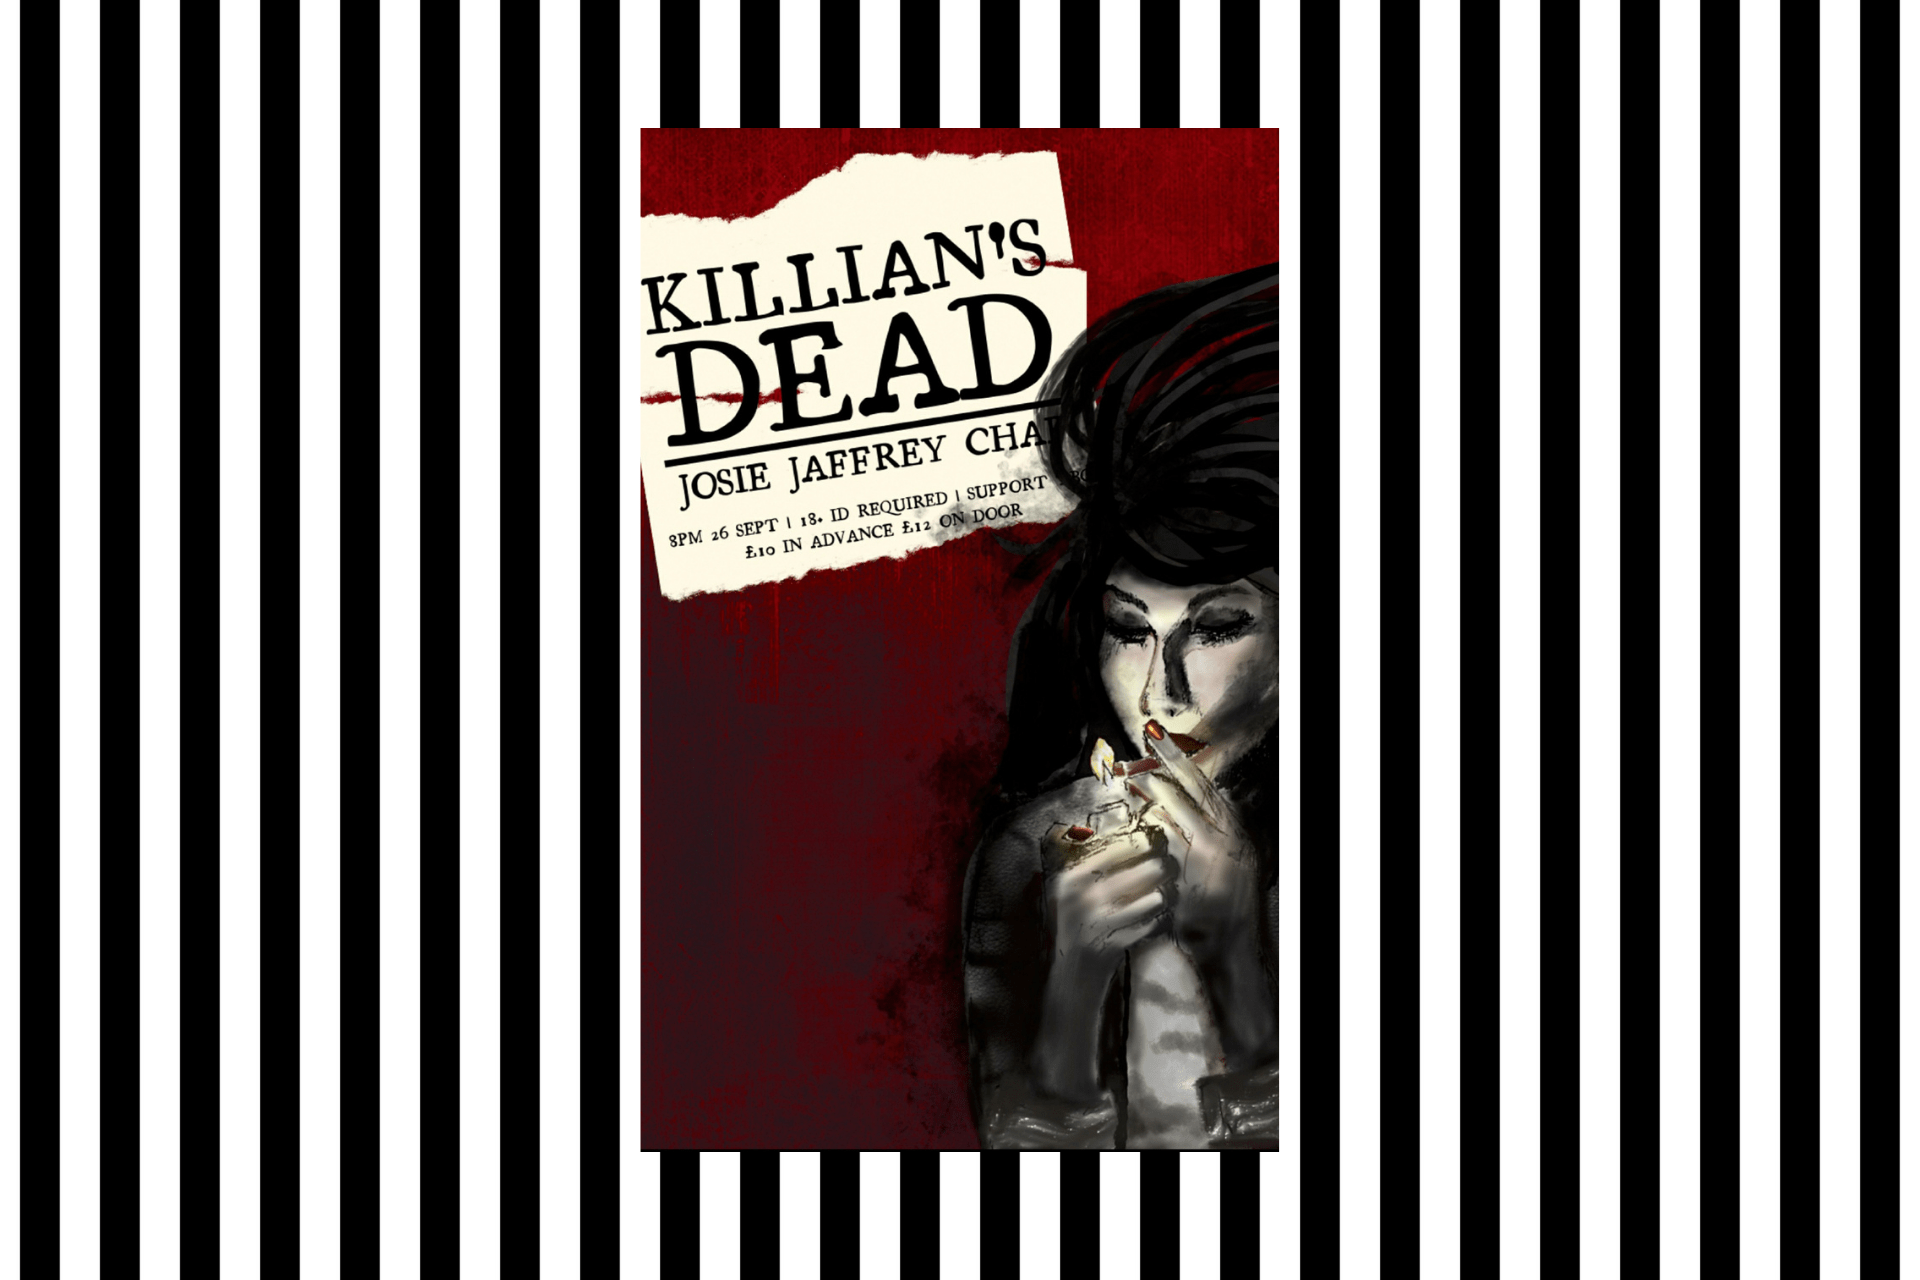 The cover of Killian's Dead, by Josie Jaffrey